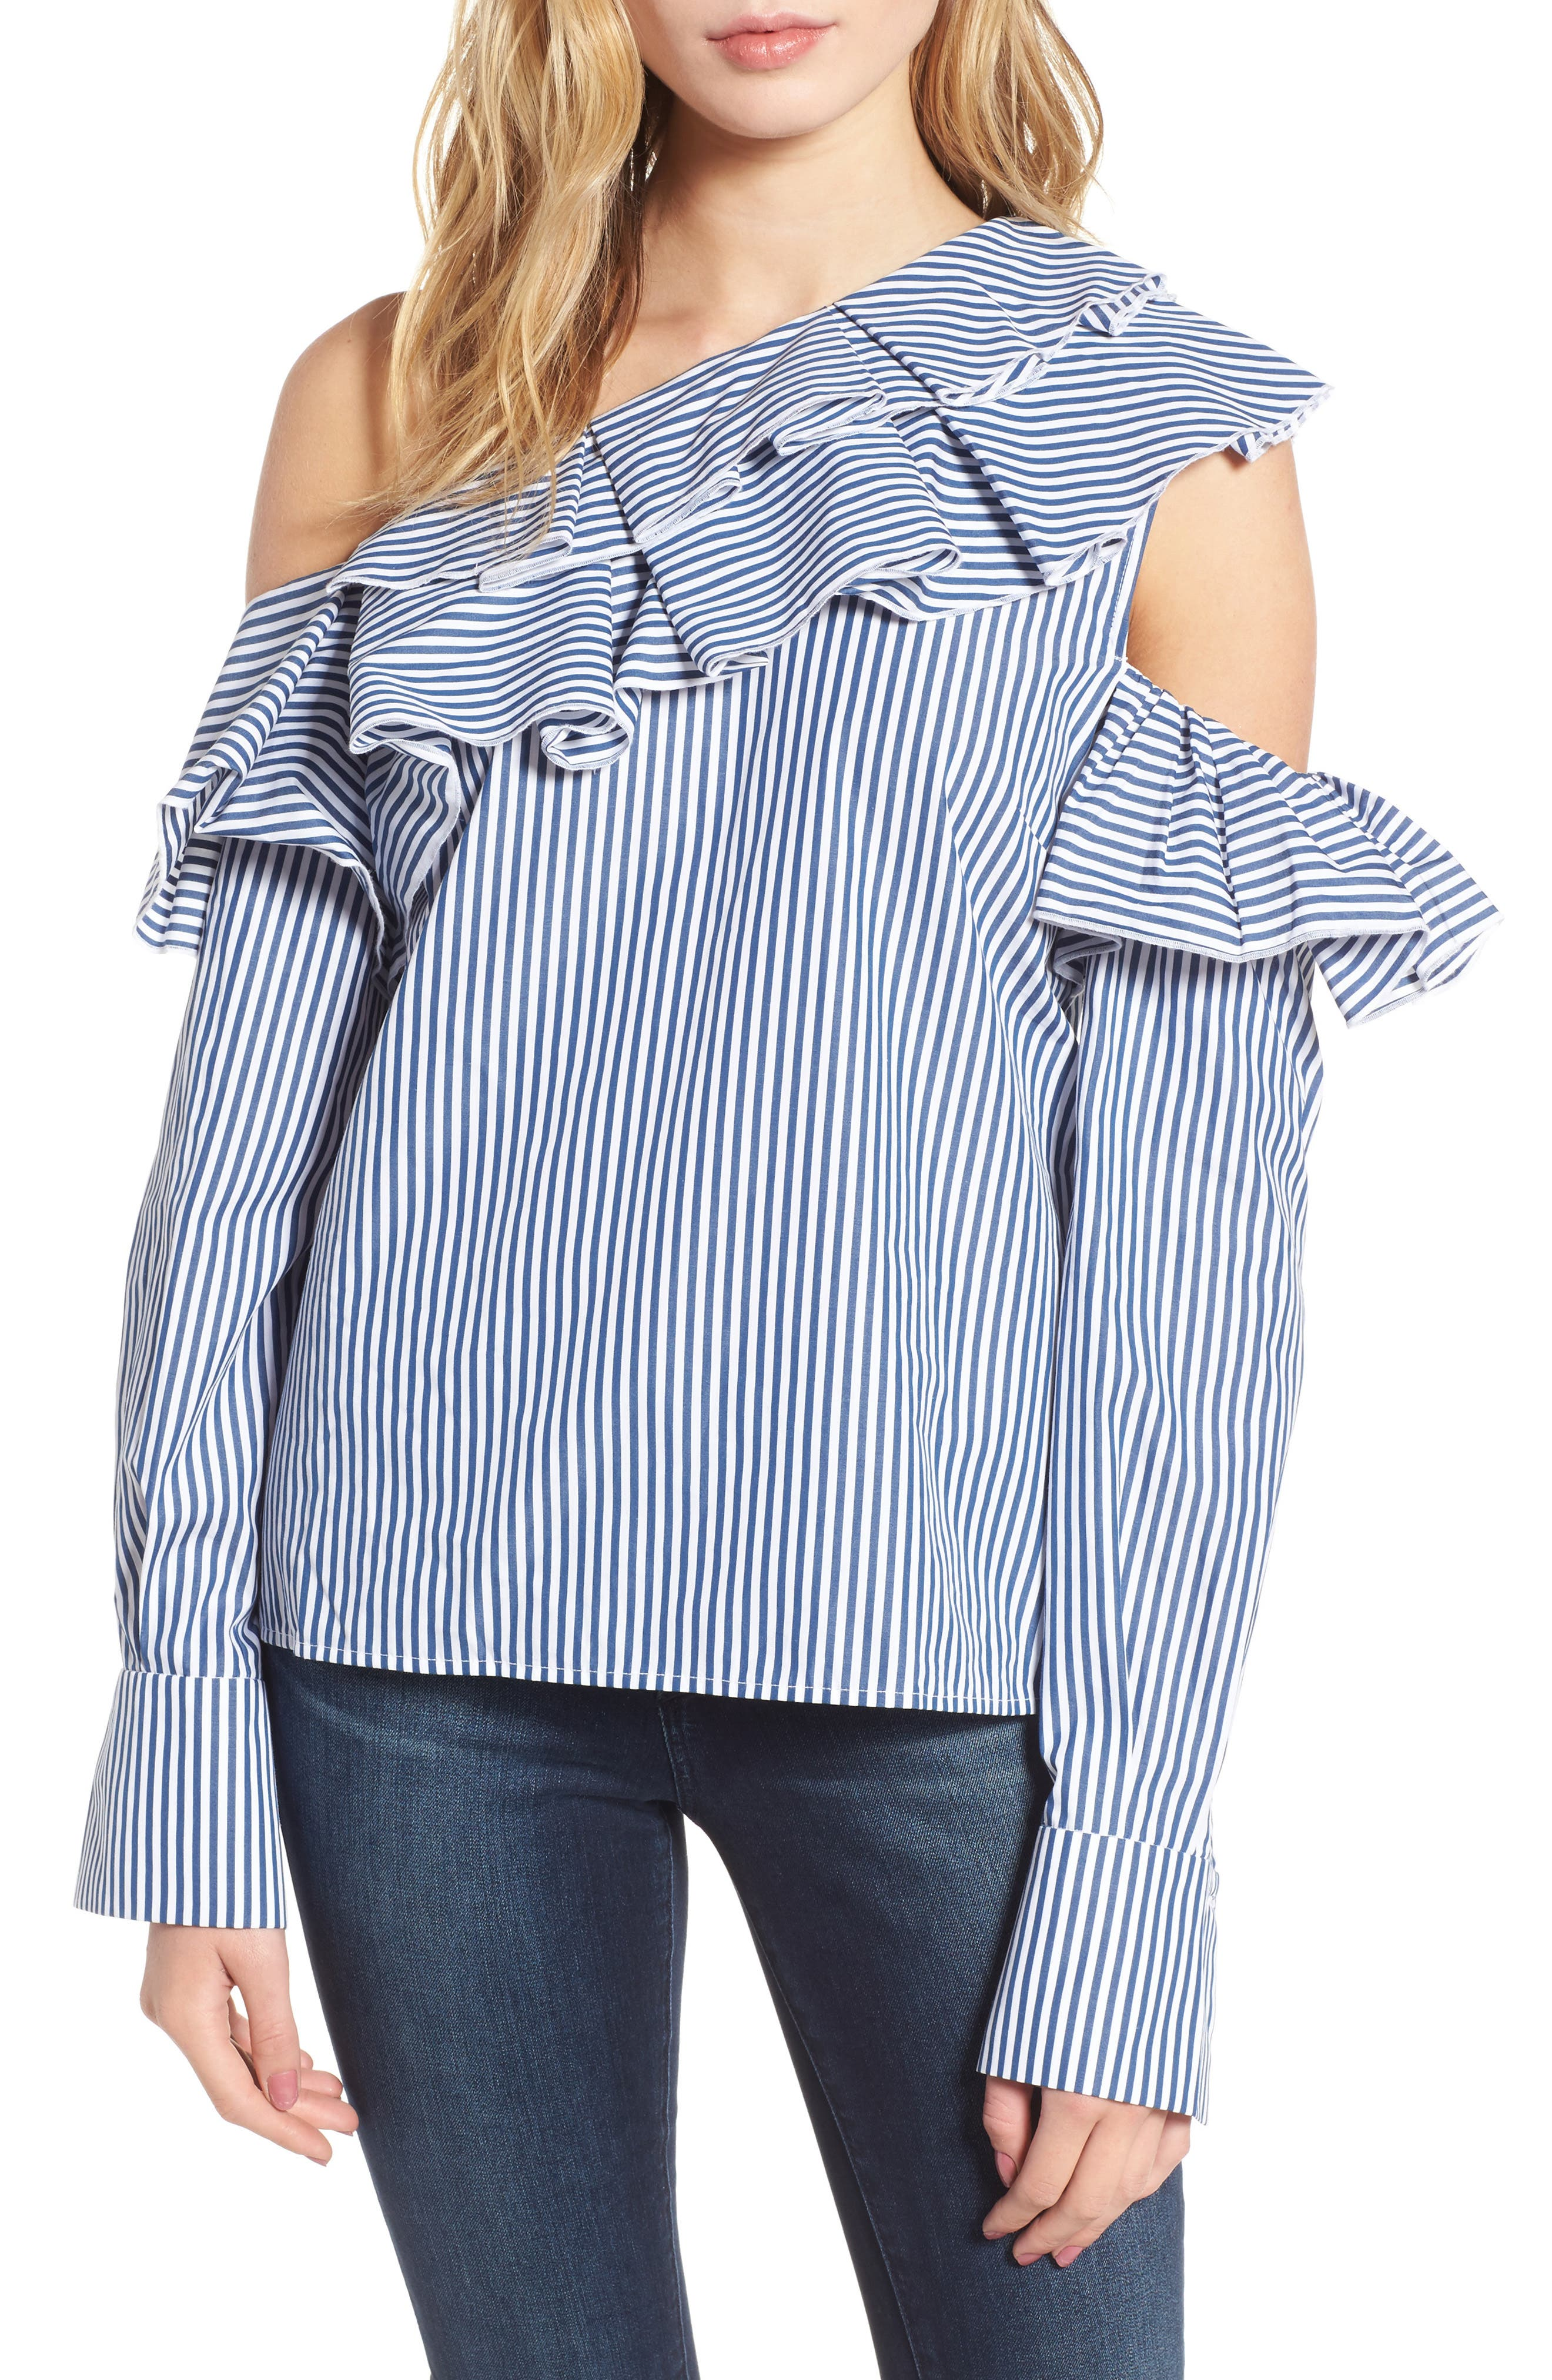 Ruffle One-Shoulder Blouse,                             Main thumbnail 1, color,                             Navy M Betty St